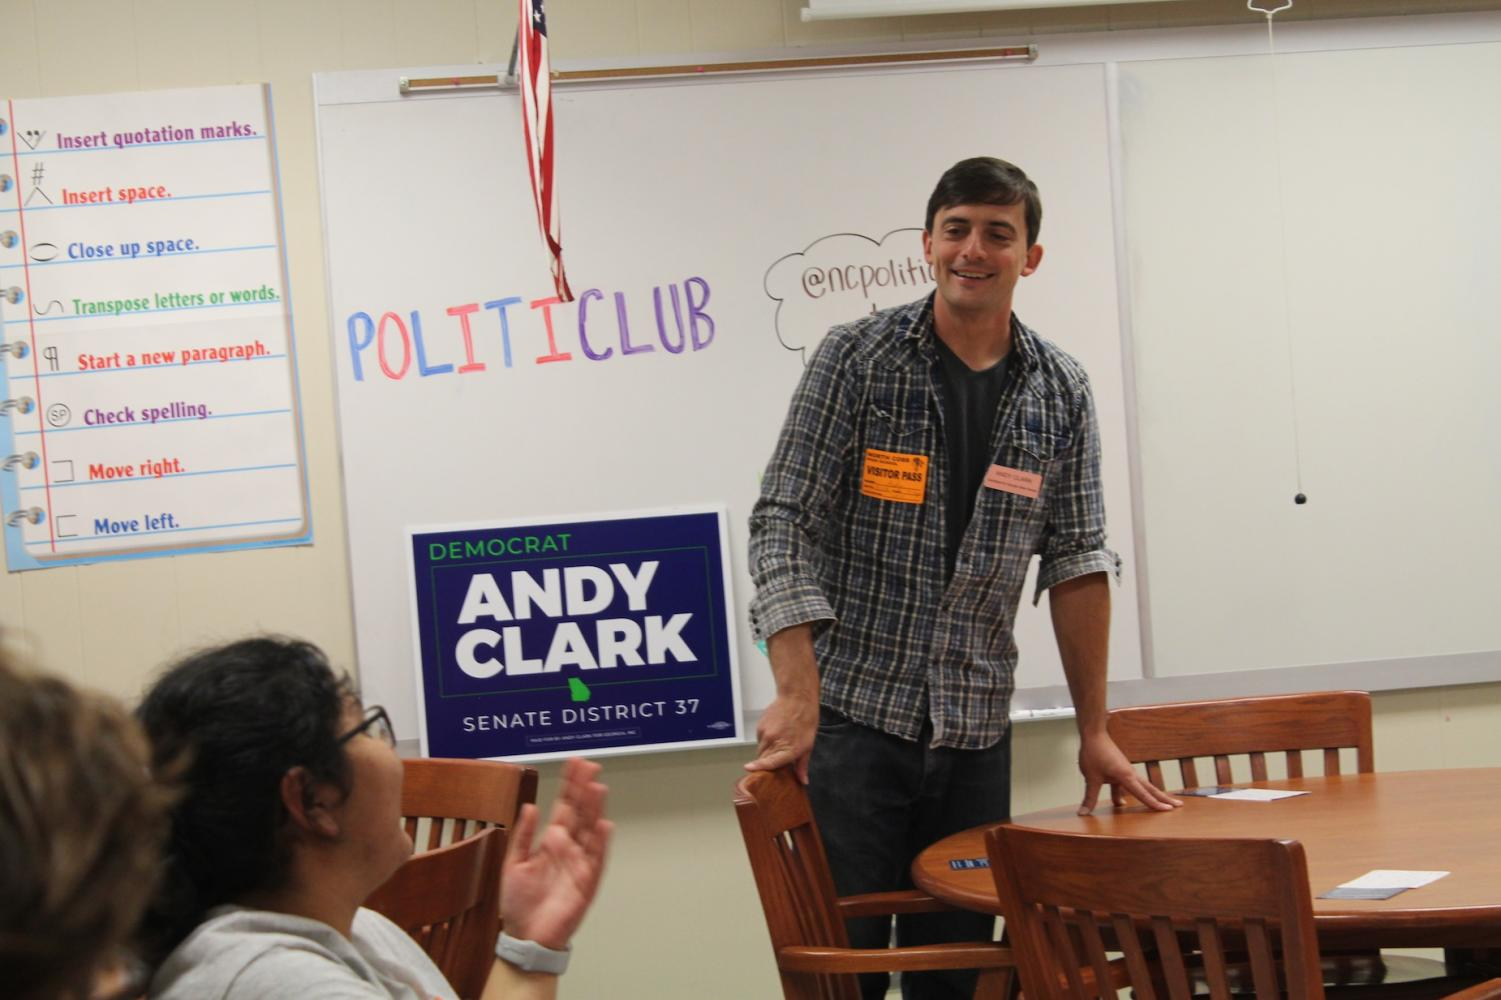 At the Politiclub meeting, Democrat Andy Clark, runner for Senate in District 37, gets close with the NC students through engaging them in the conversation. The audience asks interesting questions to keep the discussion going as Clark introduces himself and goes over his campaign goals.